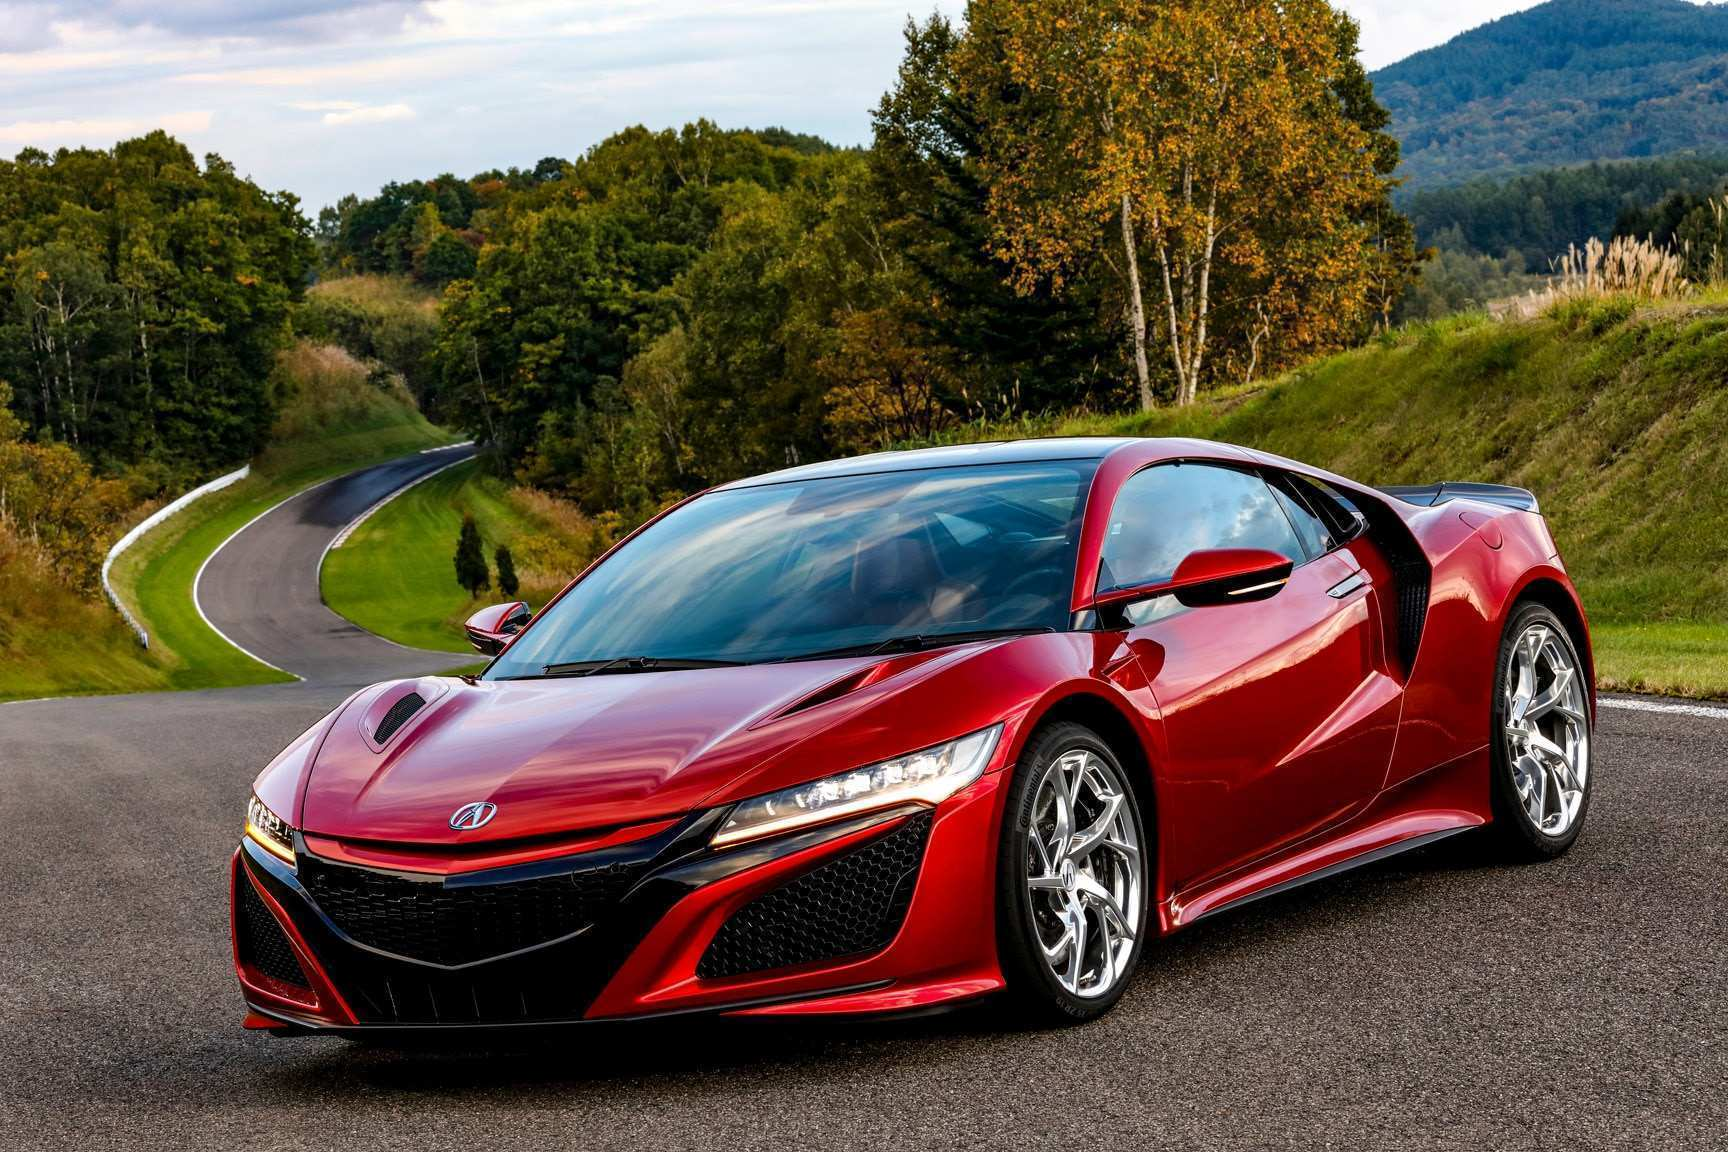 36 The Best 2019 Acura NSX Photos